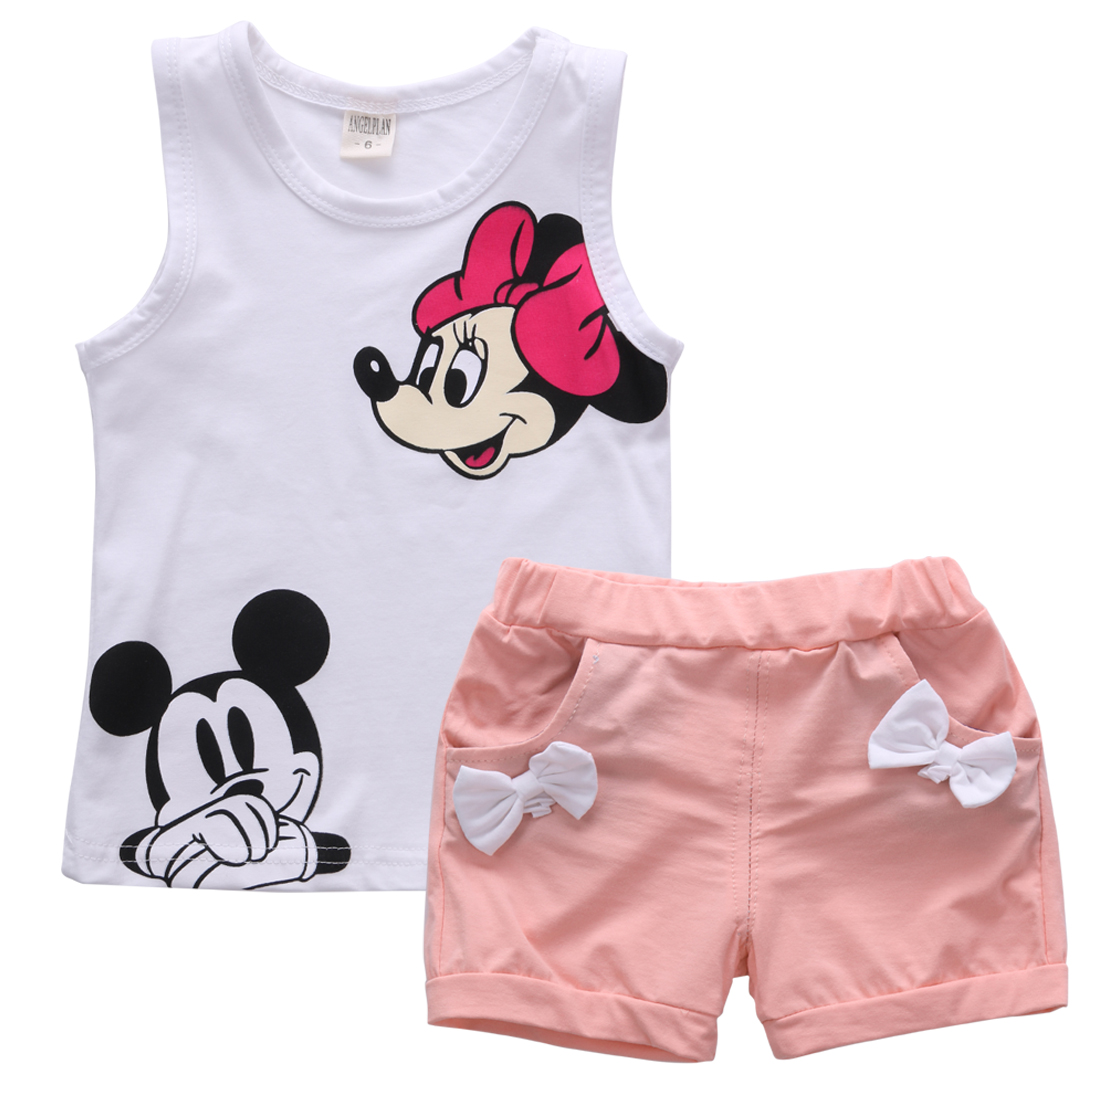 e4bfe9f2fc776 Pudcoco Baby Girl Summer Clothes Set 2 Piece Set Cartoon Minnie Mouse 2-4T Baby  Kids Clothes Vest Top + Shorts Tracksuit Outfits ~ Top Deal July 2019